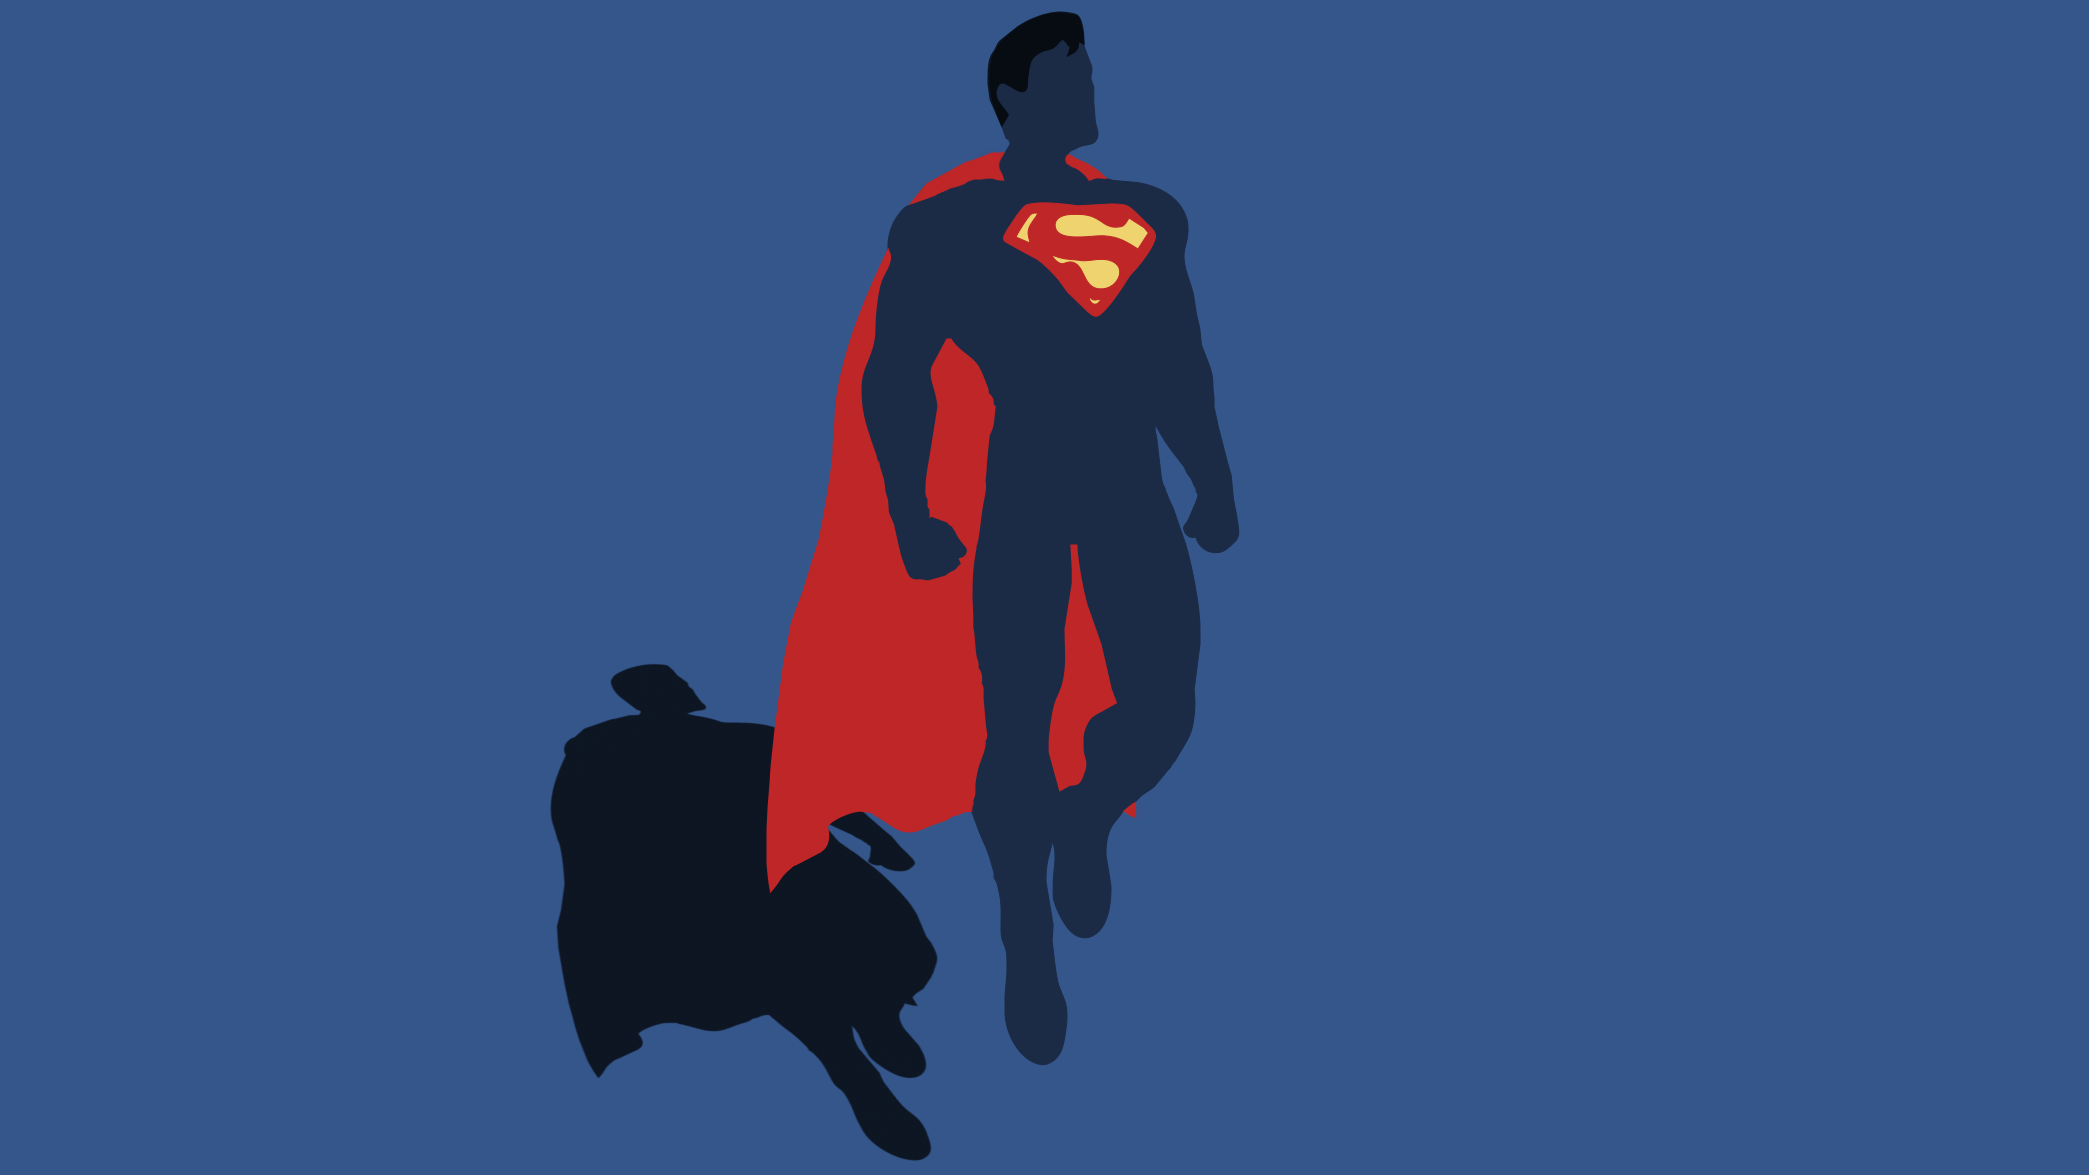 Superman Backgrounds, November 2, 2014 148.79 Kb